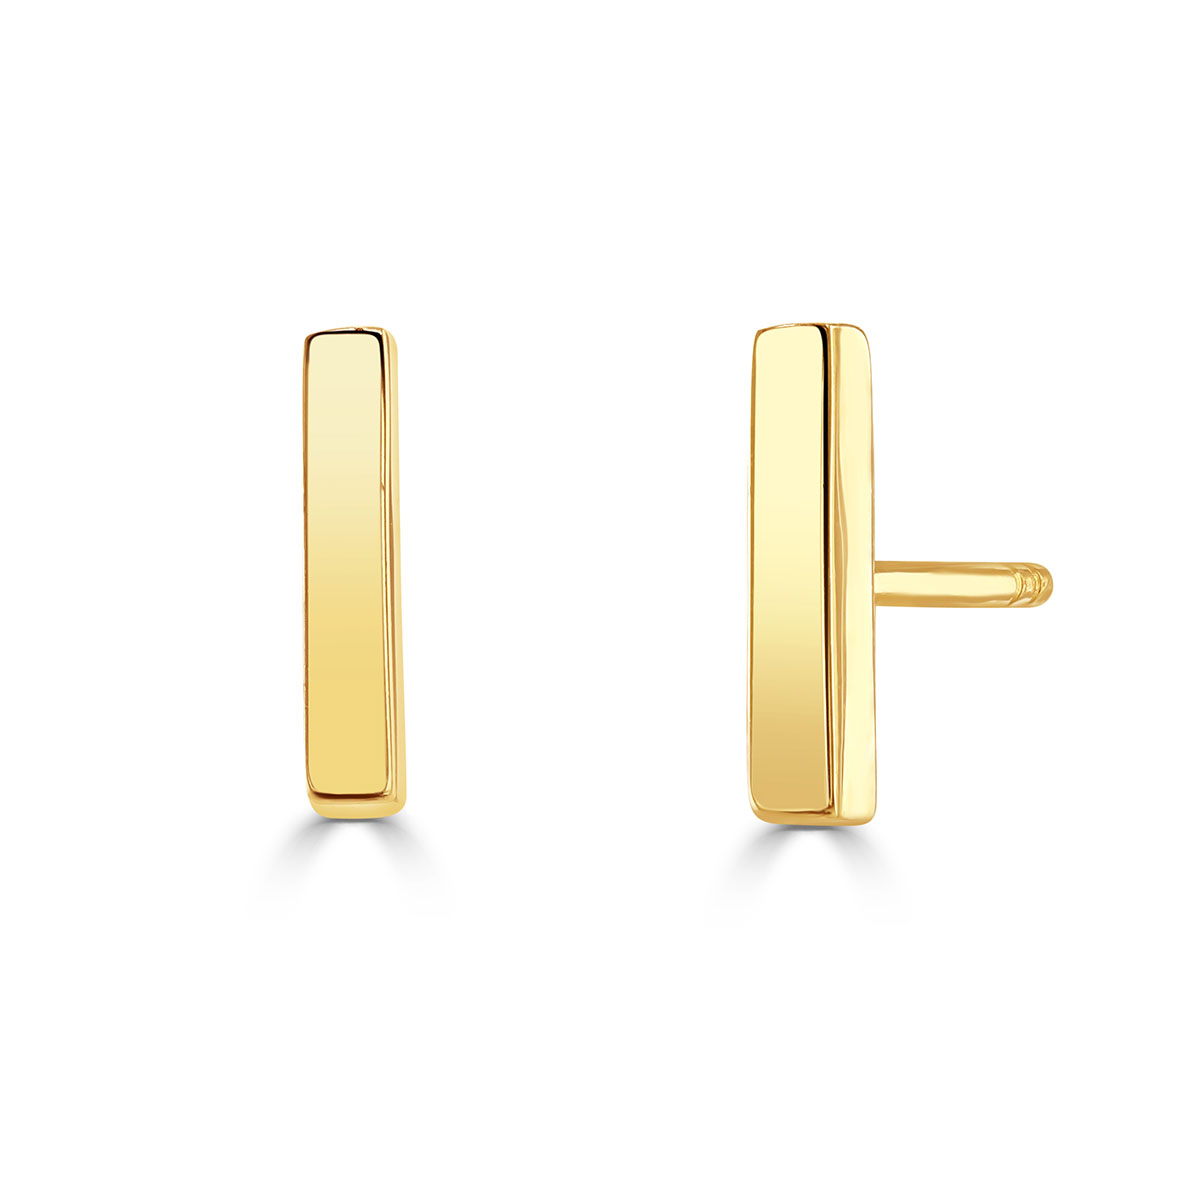 Polished yellow gold earrings